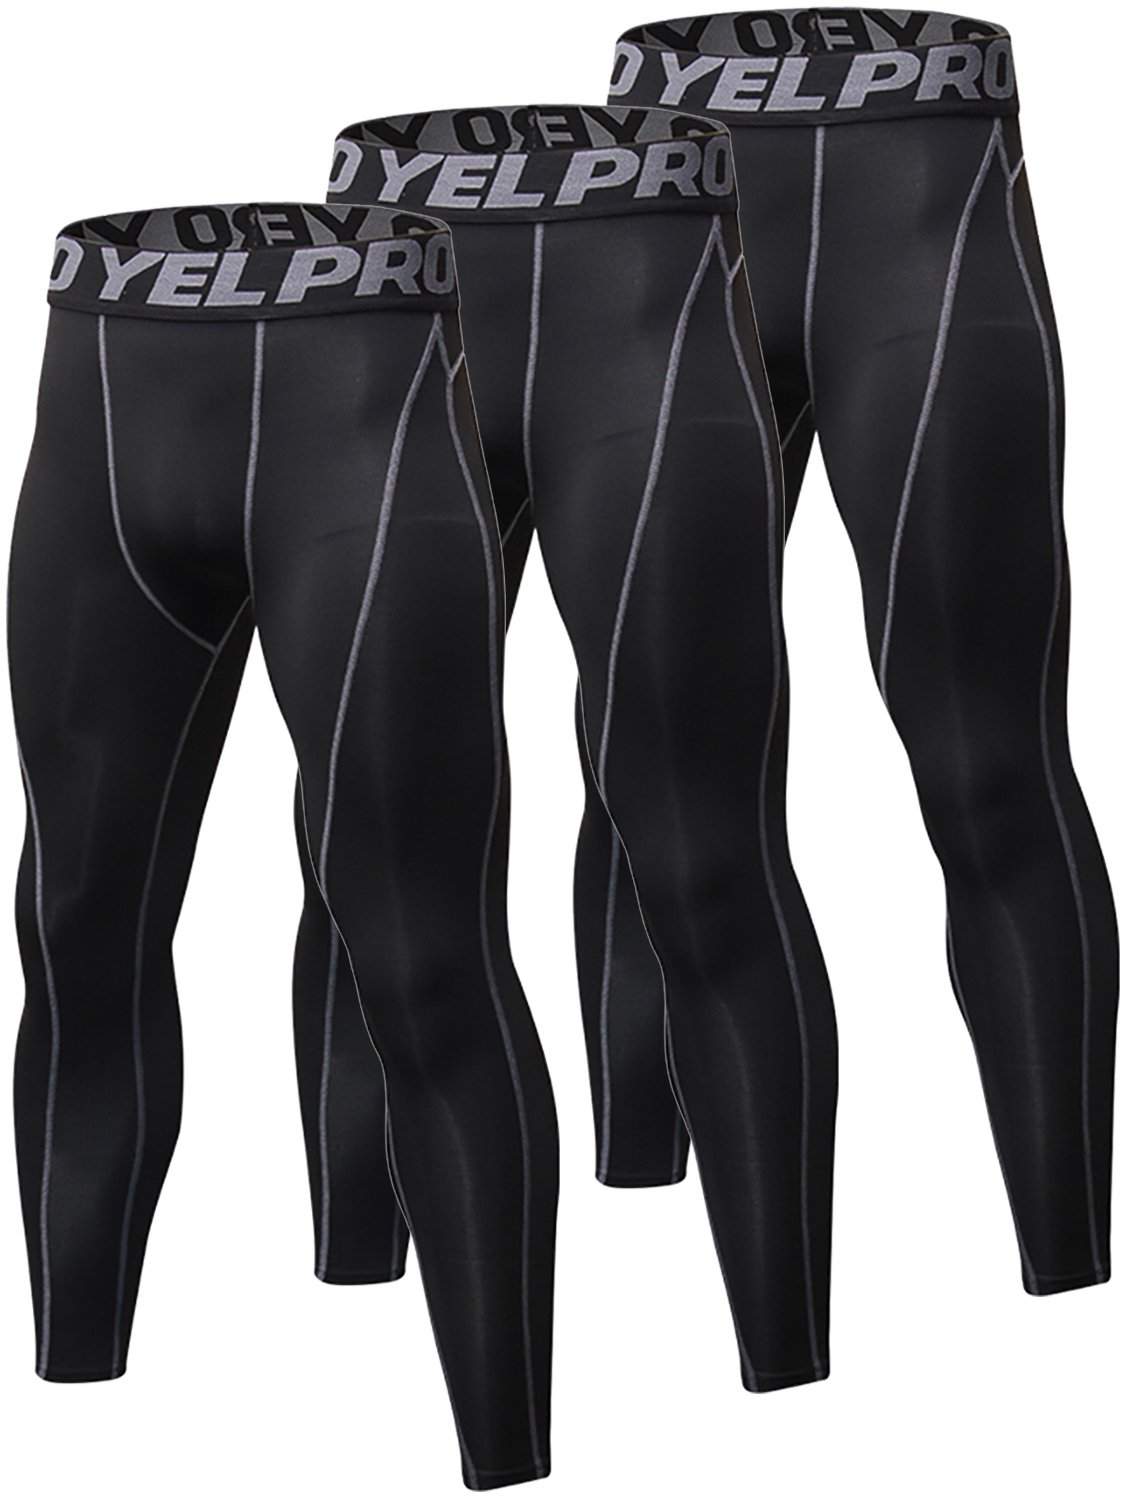 Yuerlian 3 Pack Mens Compression Leggings Cool Dry Sport Pants Running Gym Tights (01-Black Gray*3, UK M)